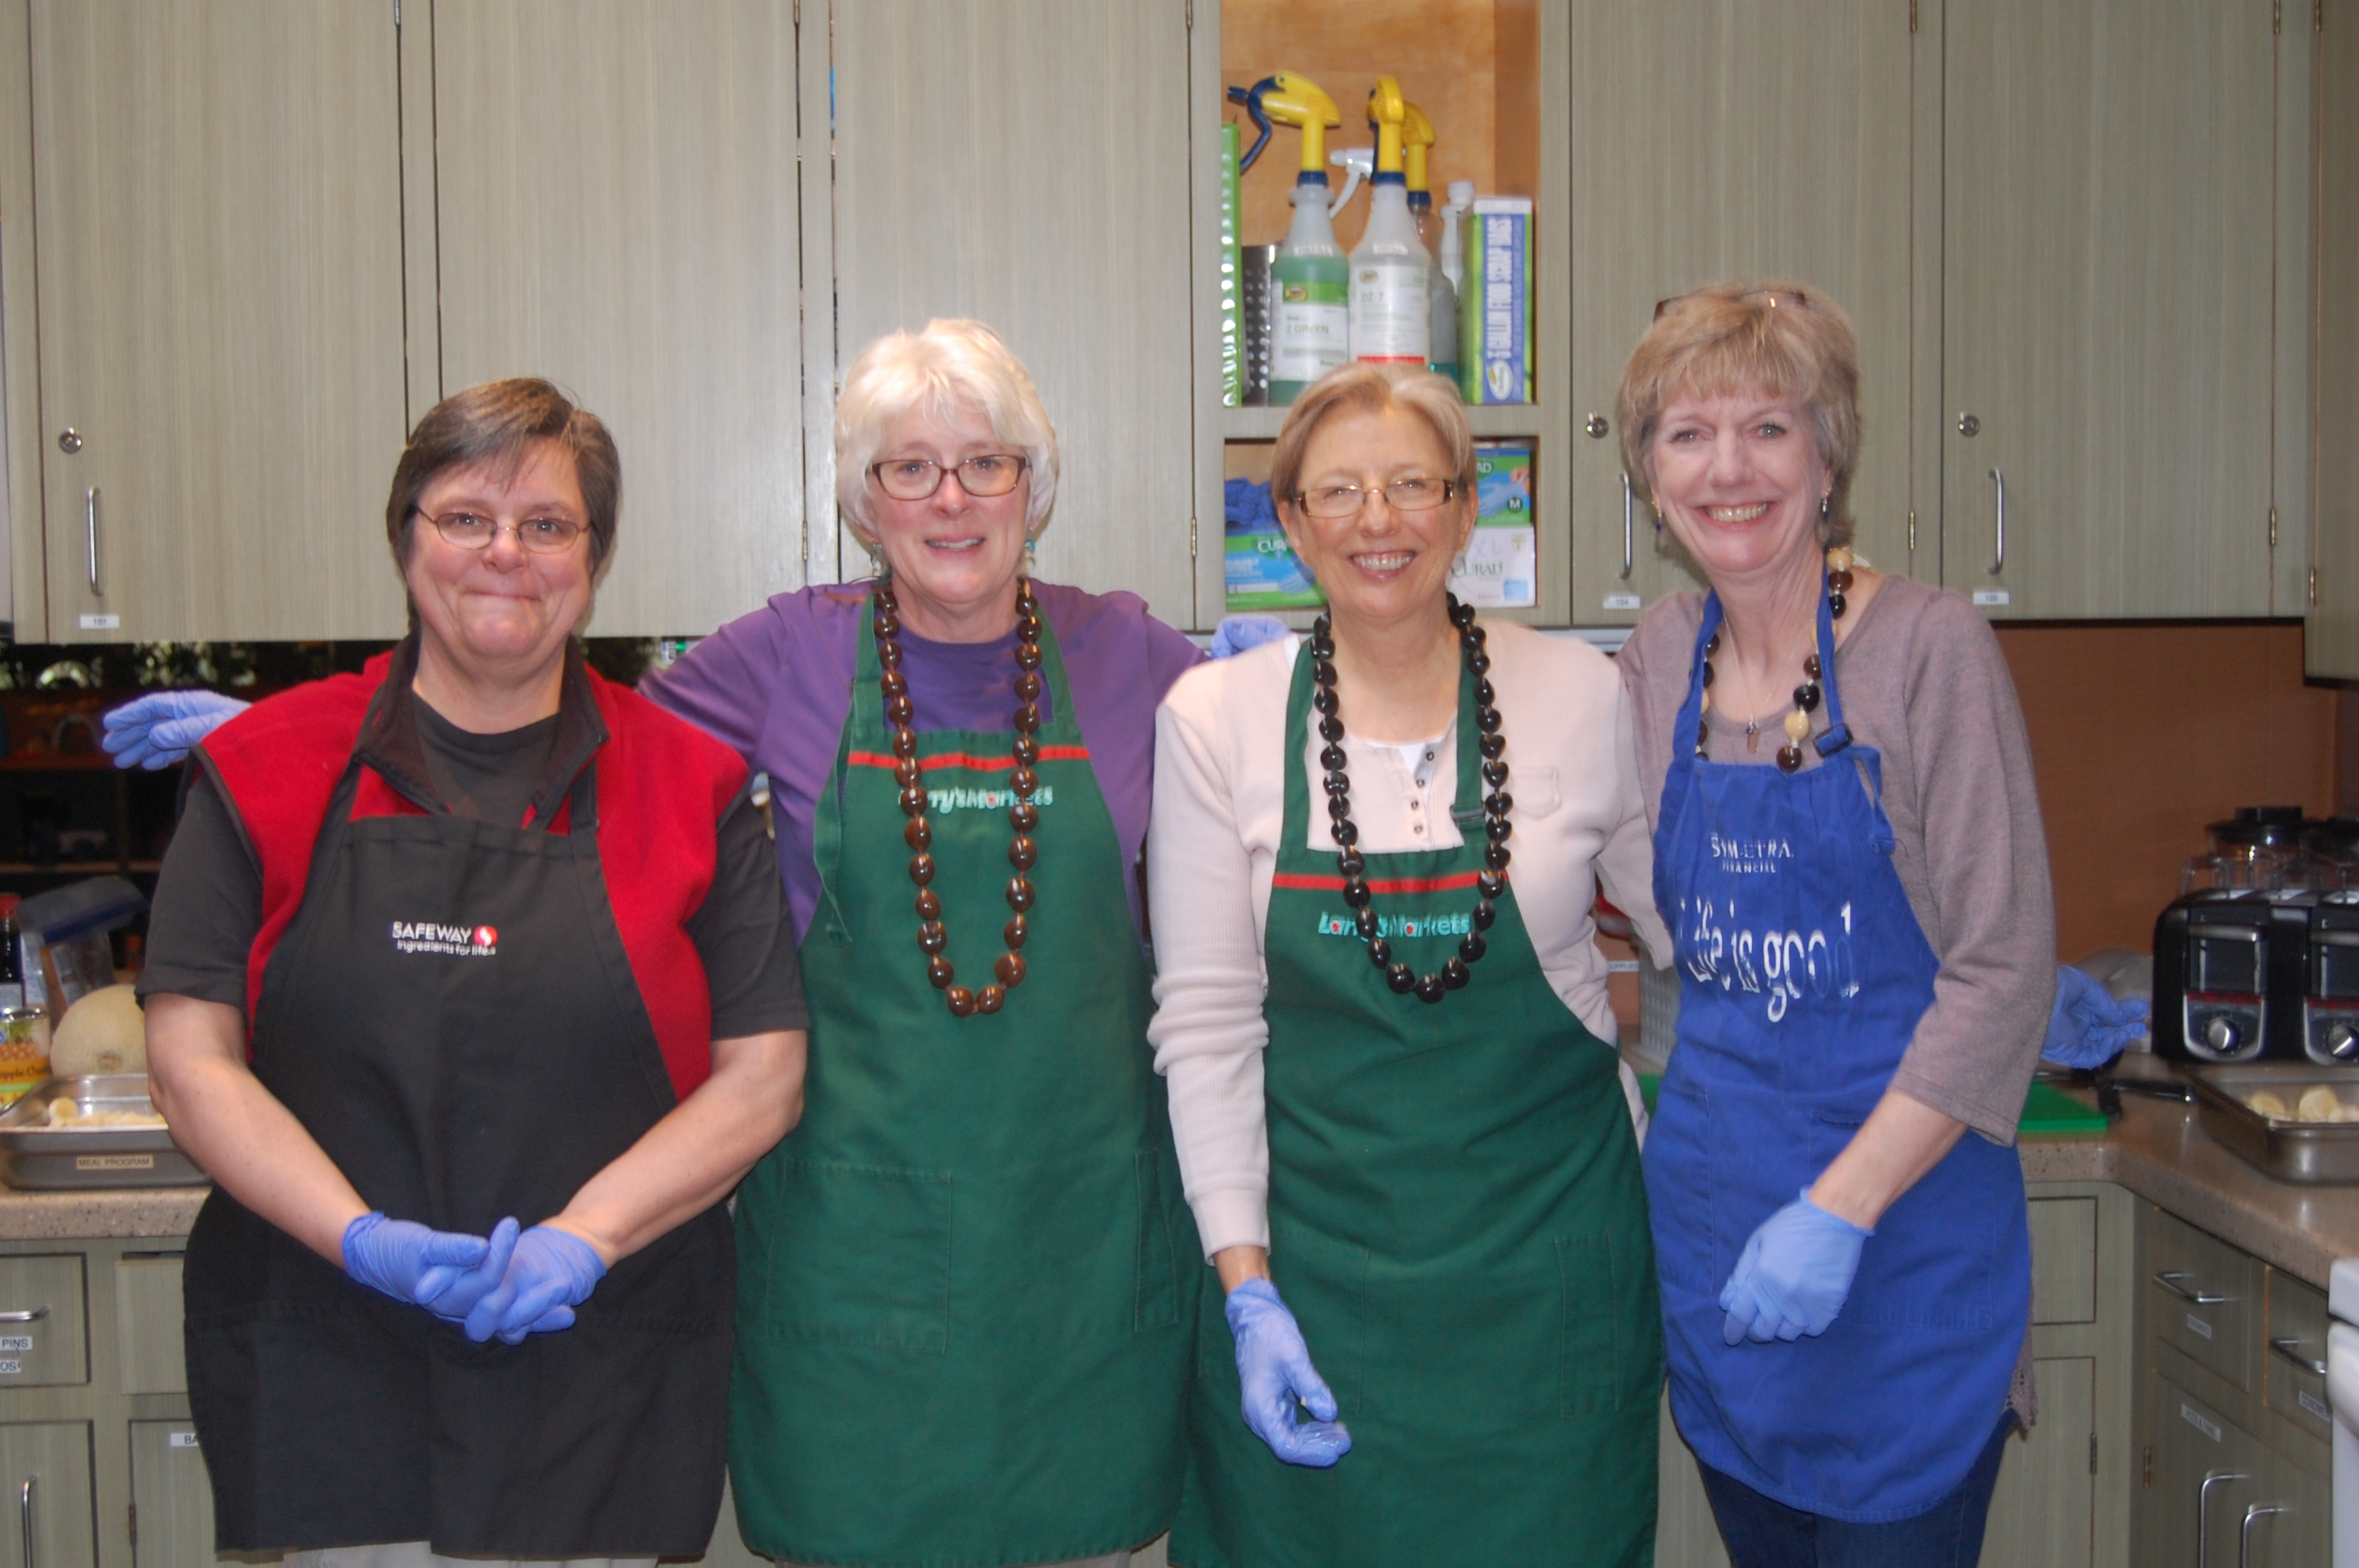 Janet Stocker and the Snohomish Valley Crew